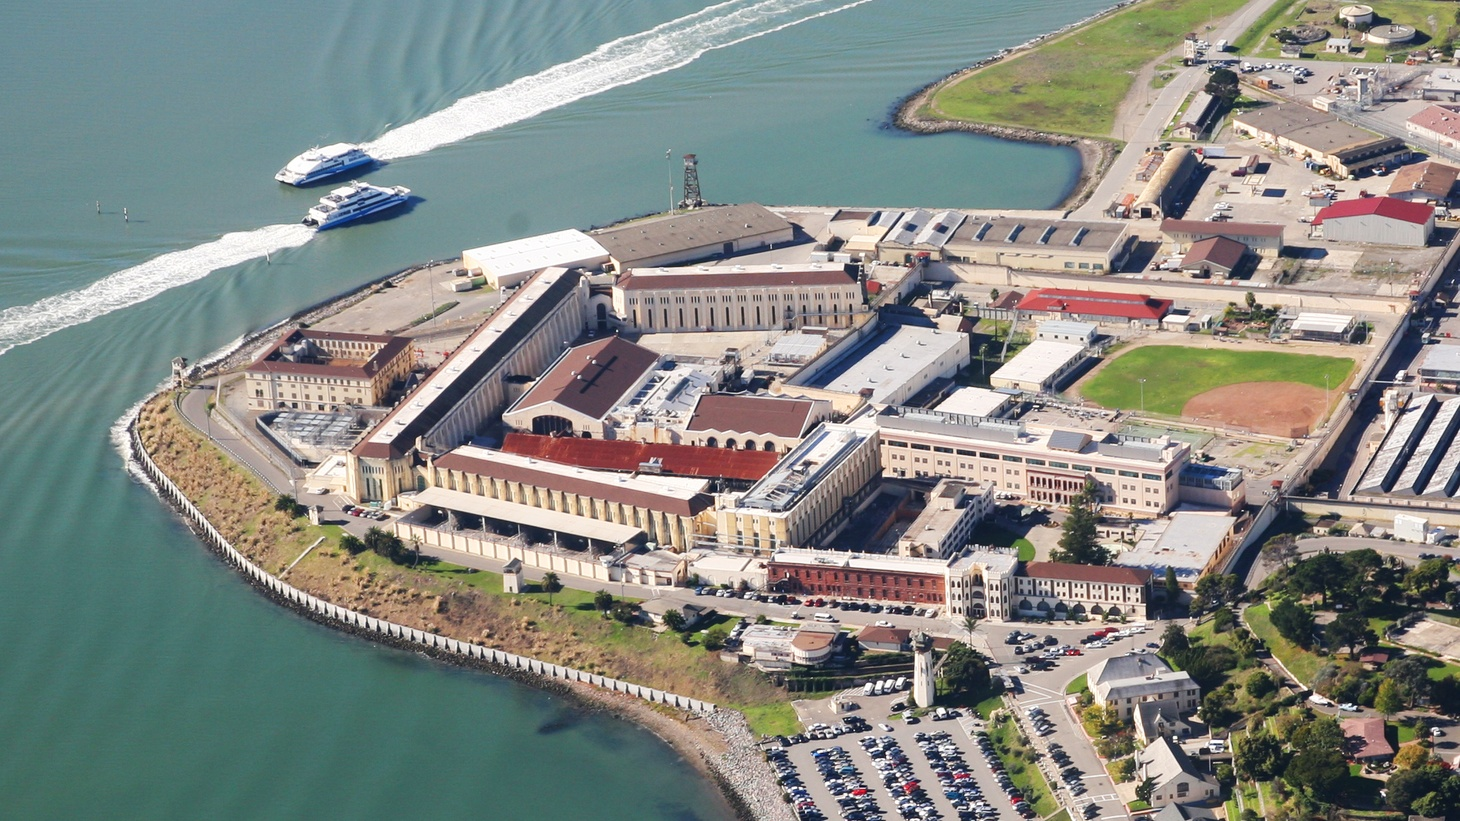 San Quentin prison was free of COVID-19 for months, until busloads of inmates from a Chino facility transferred there.